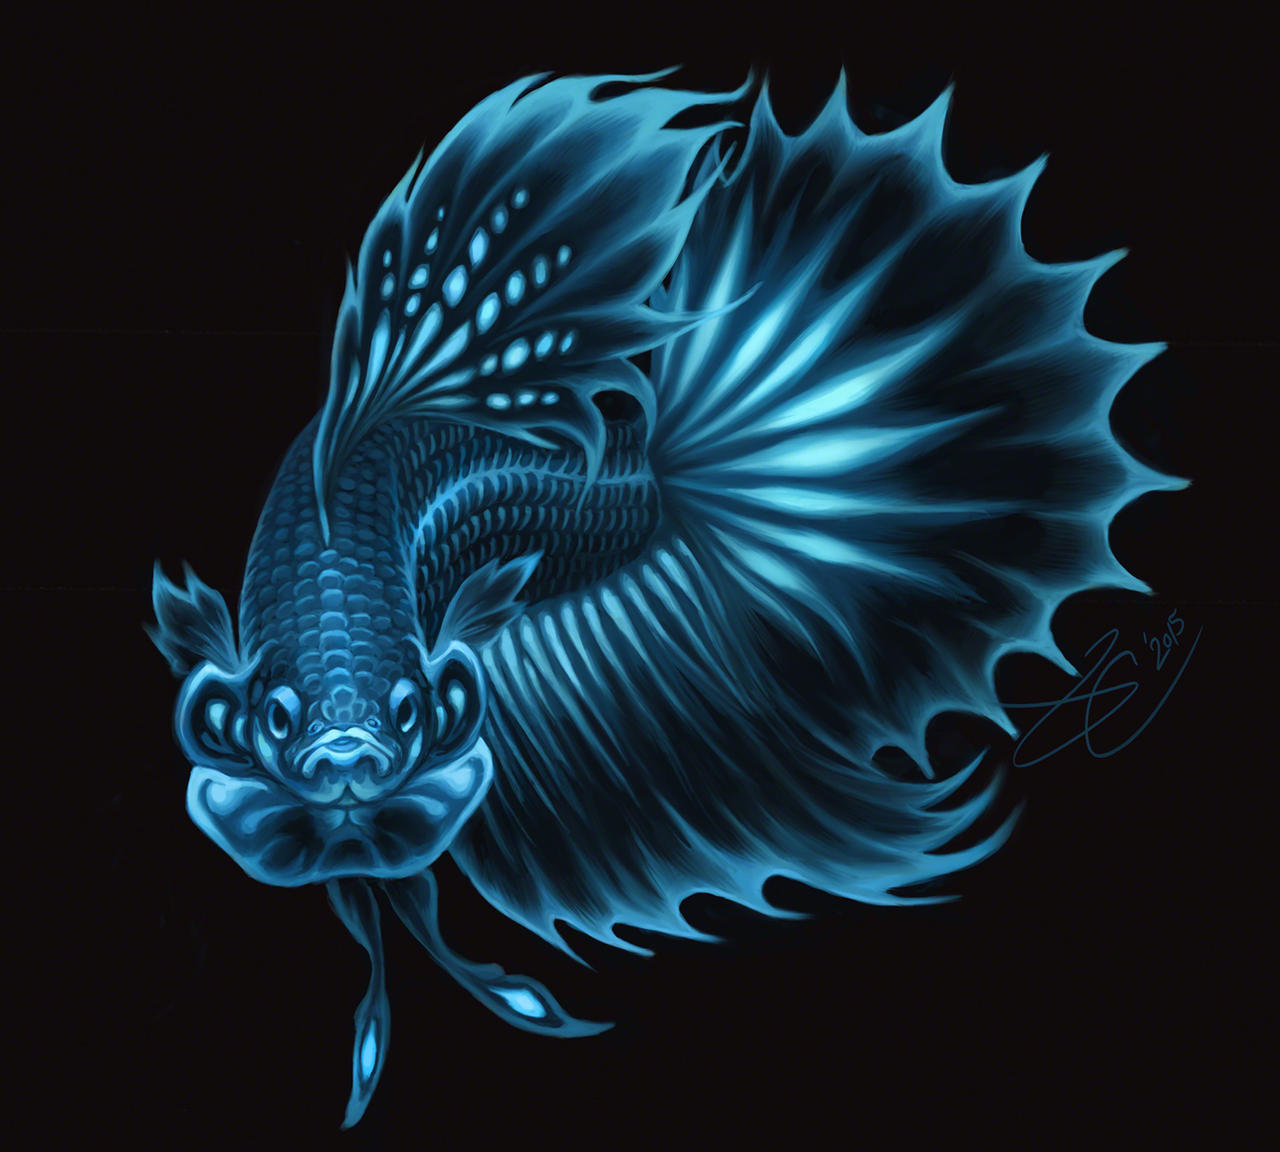 half moon fighter fish wallpaper